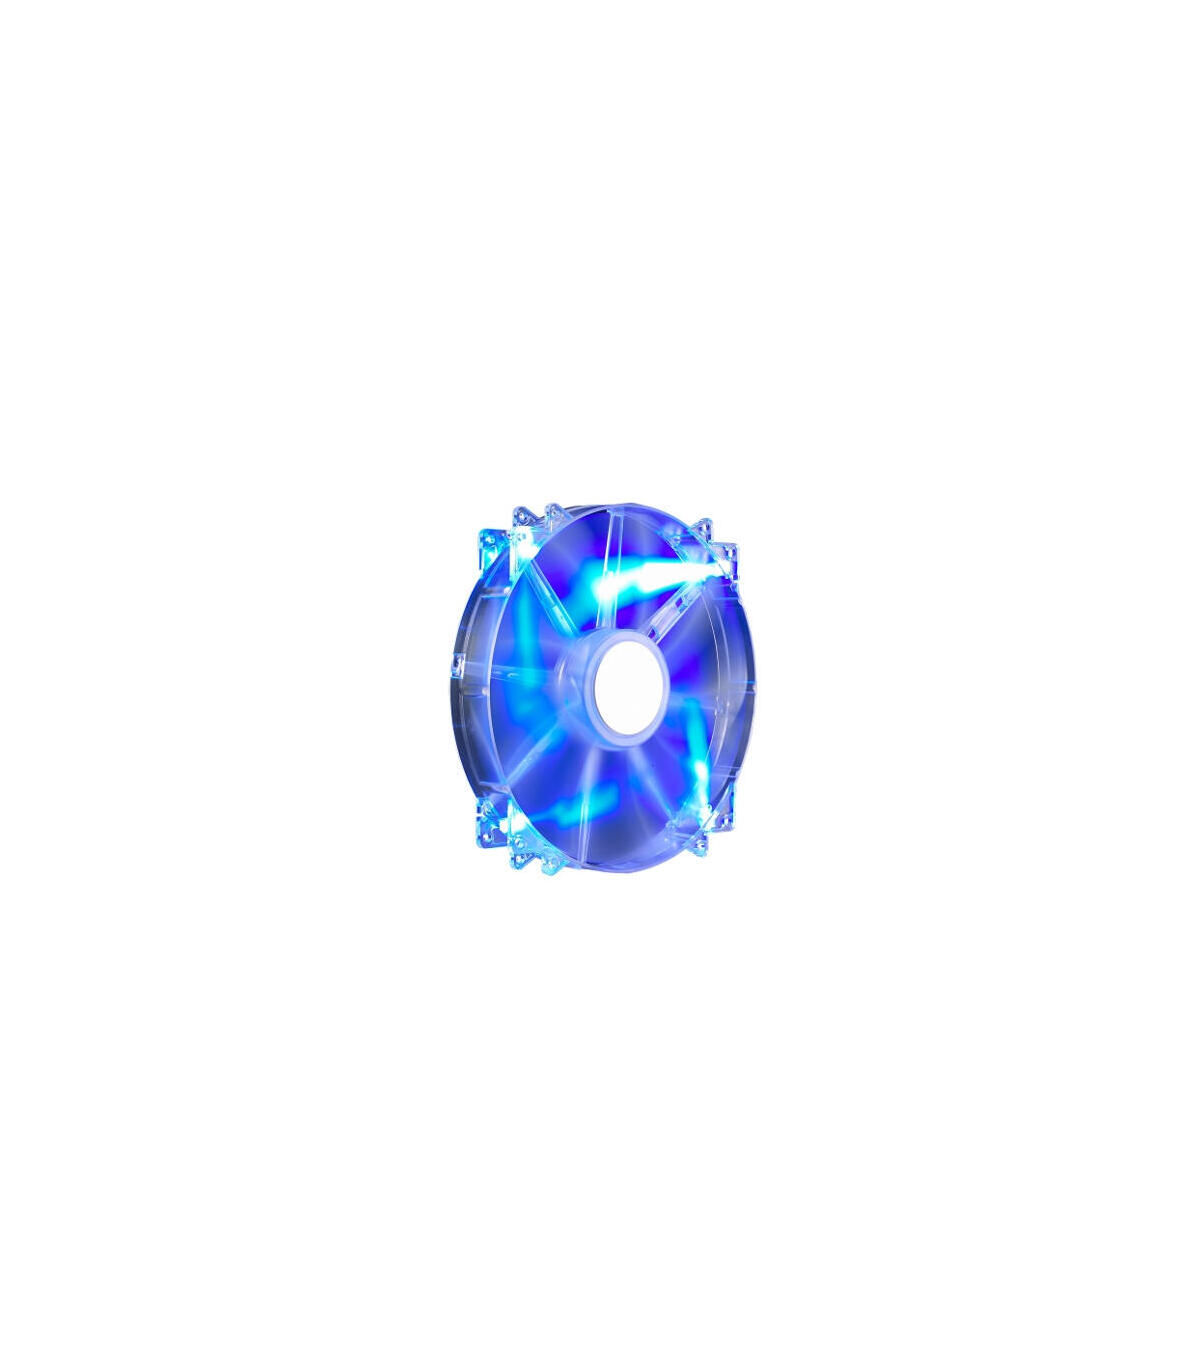 Sleeve Bearing 200mm Blue LED Silent Fan for Com... Cooler Master MegaFlow 200